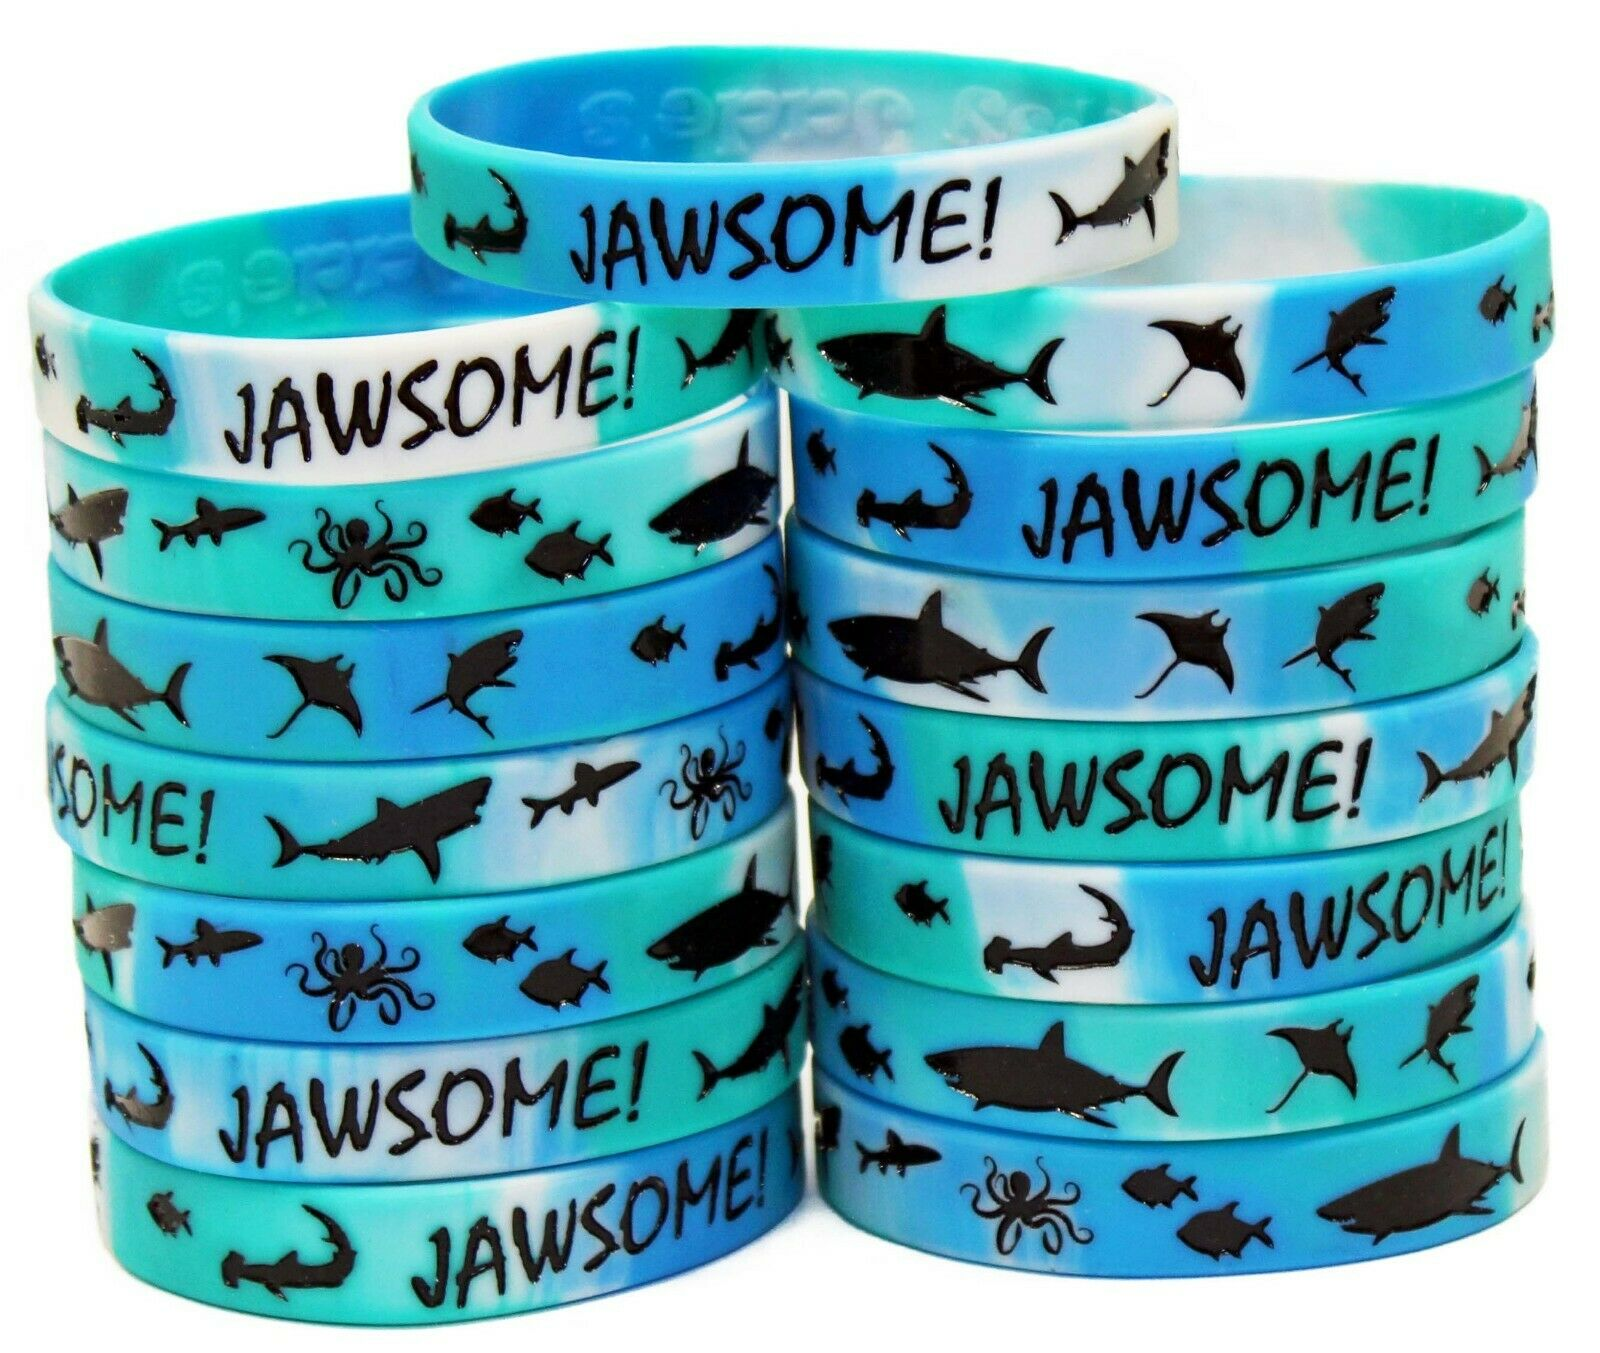 Shark Party Favors - Wristbands for Jawsome! Shark Themed Pa